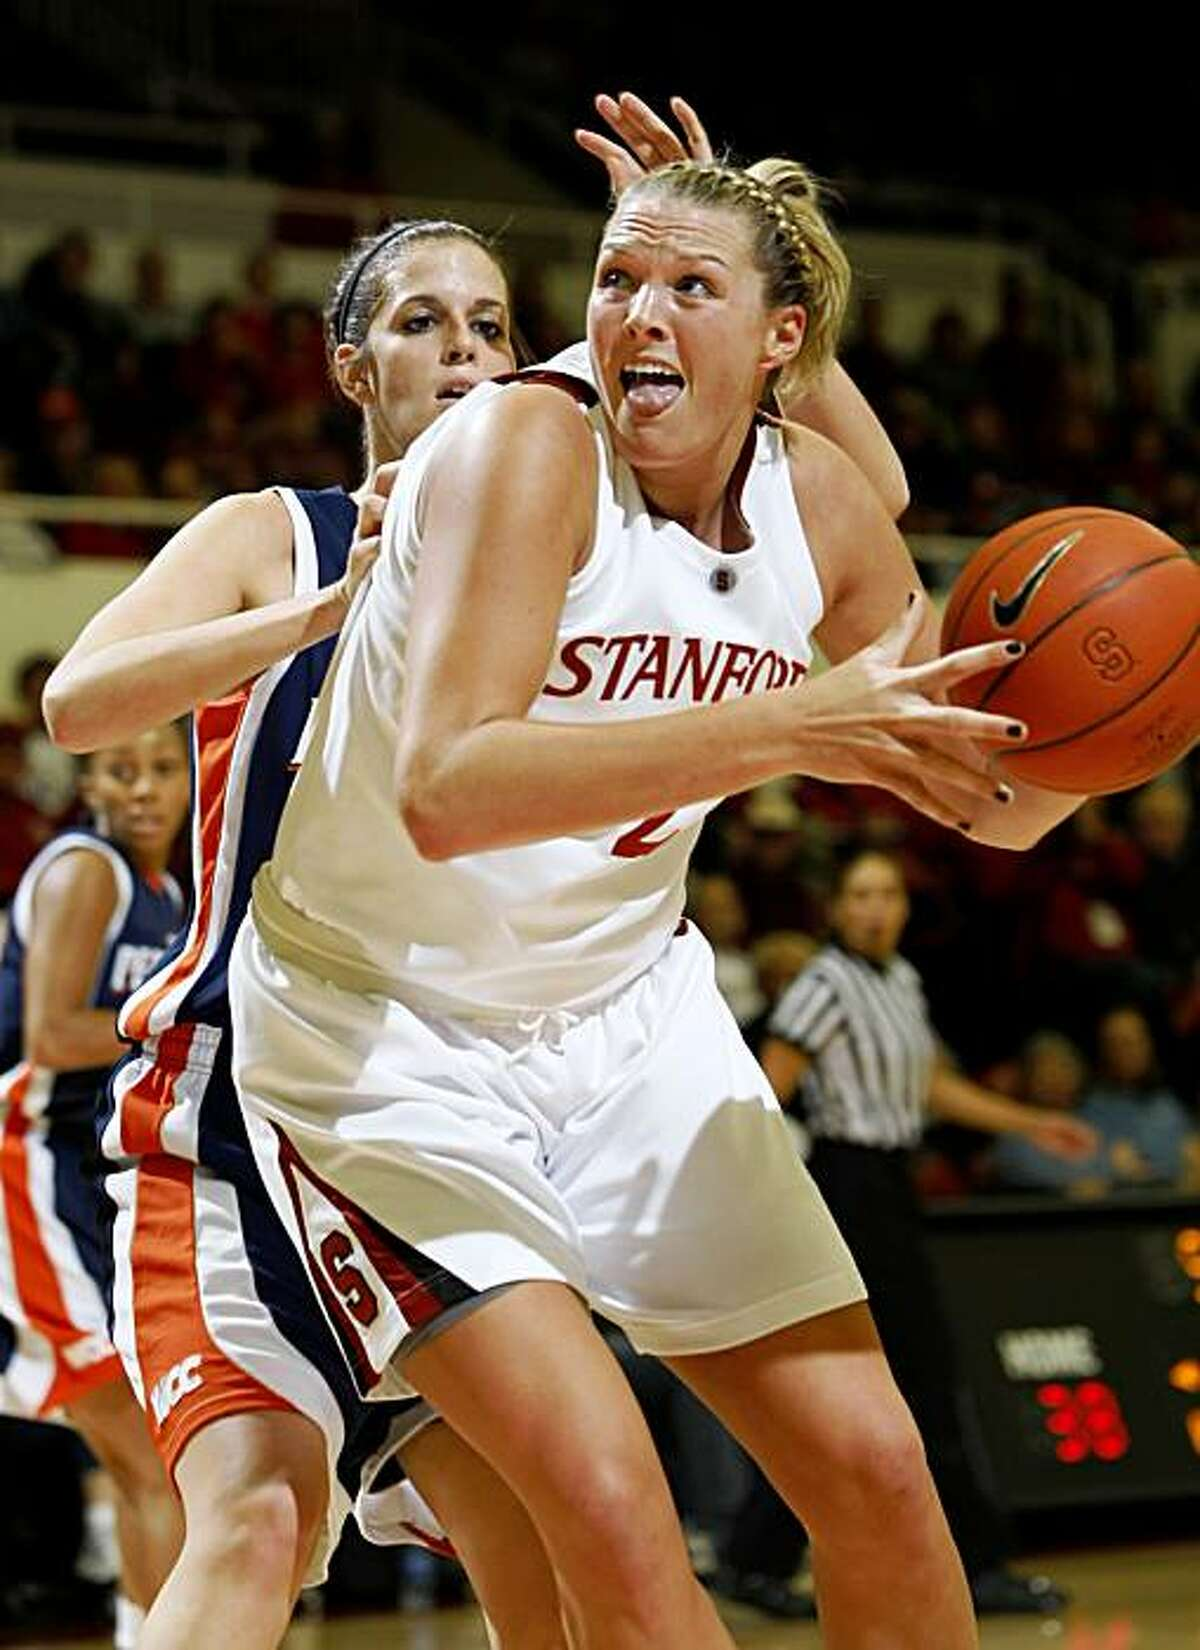 Stanford forward Jayne Appel (2) is closely covered by Pepperdine's Alex Jarrell (44) in the first half of an NCAA college basketball game in Stanford, Calif., Thursday, Nov. 19, 2009. (AP Photo/Paul Sakuma)